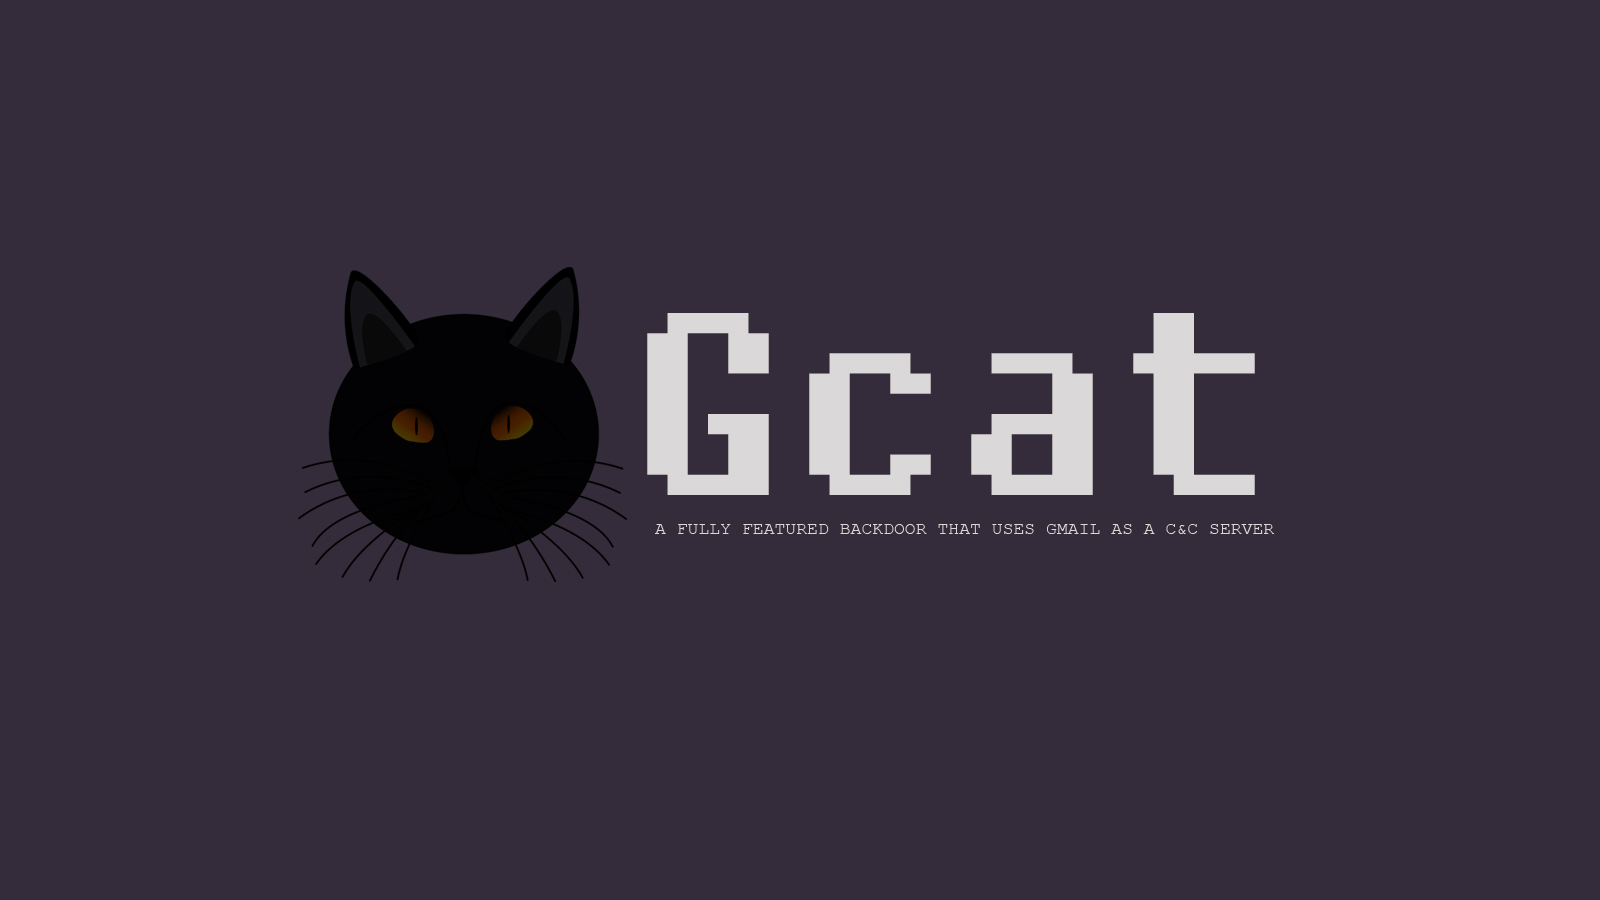 Gcat - A Fully Featured Backdoor That Uses Gmail As a C&C Server